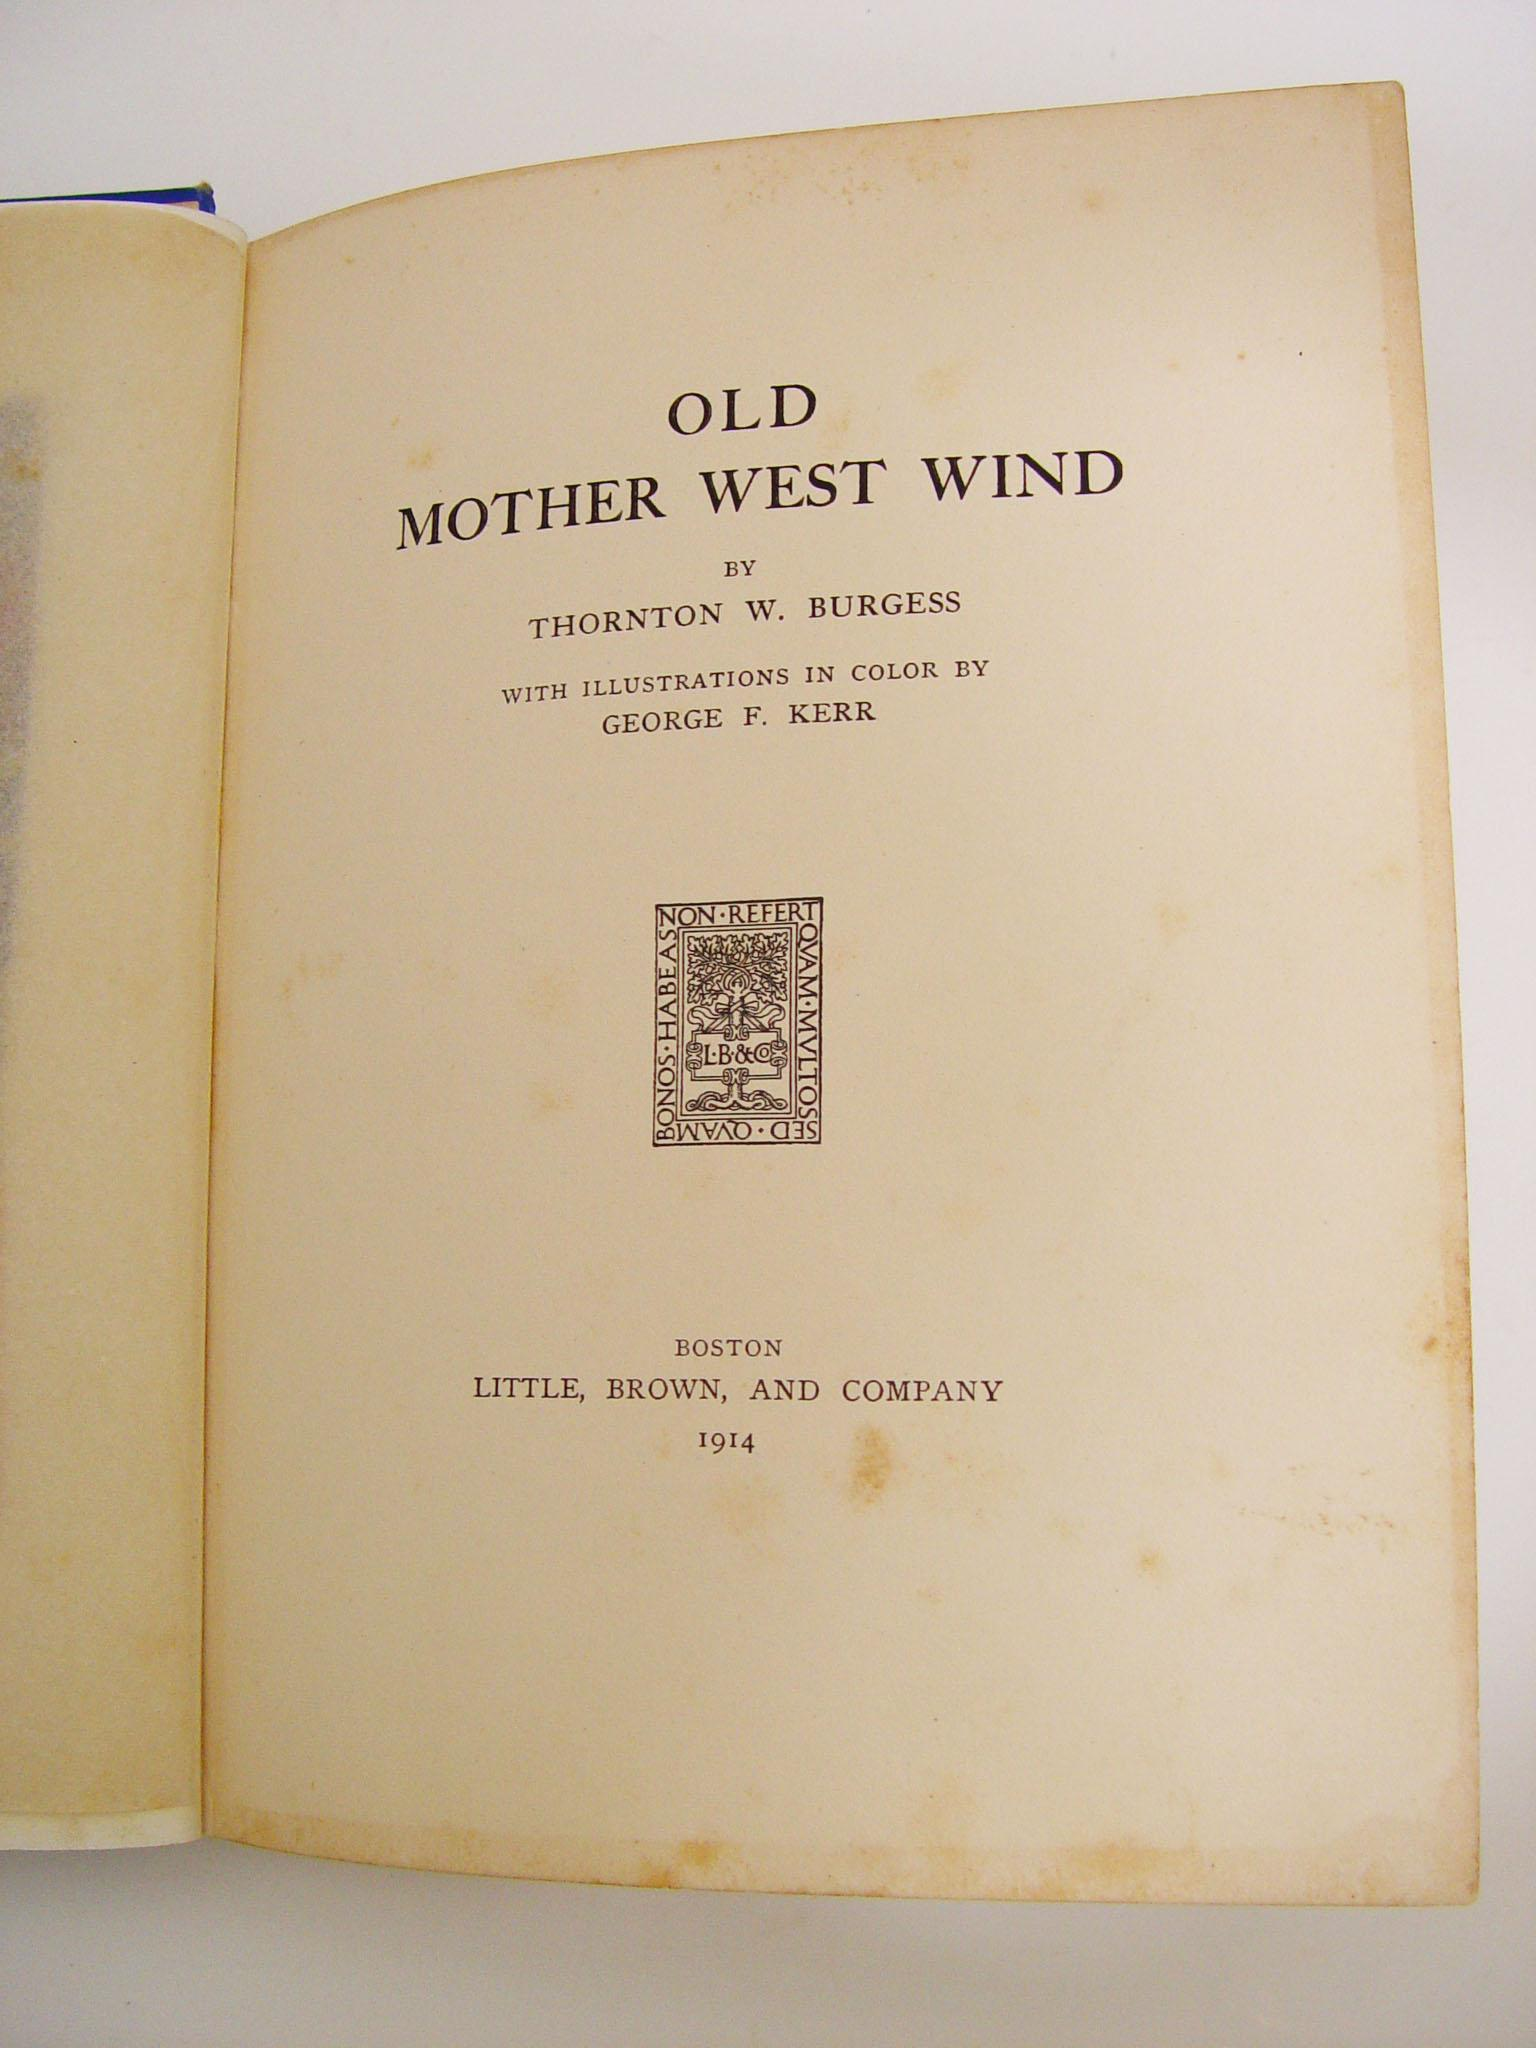 Old Mother West Wind, 1914 | Chairish